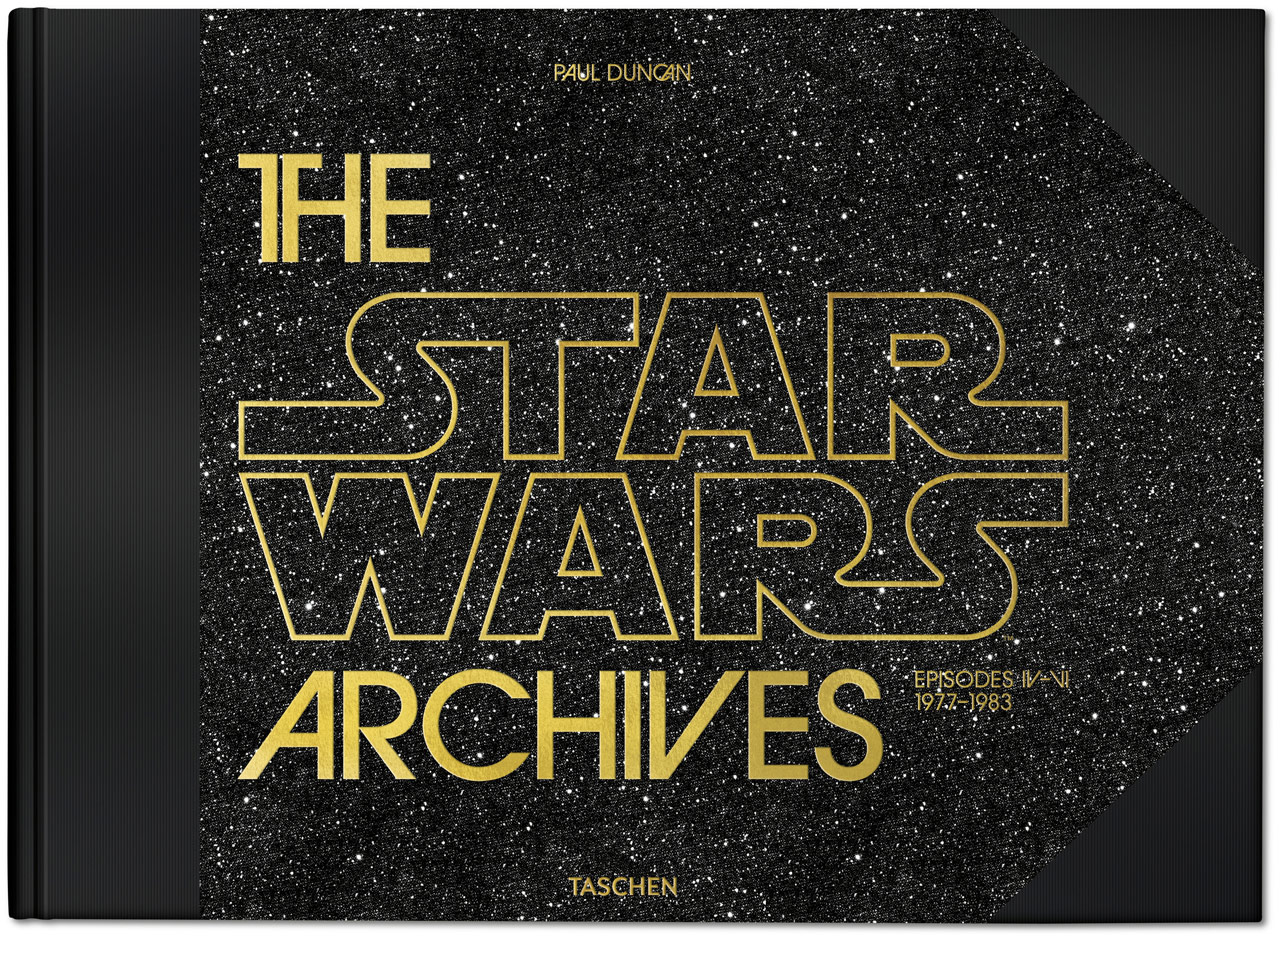 The Star Wars Archives Author Paul Duncan on George Lucas and the Making of a Universe